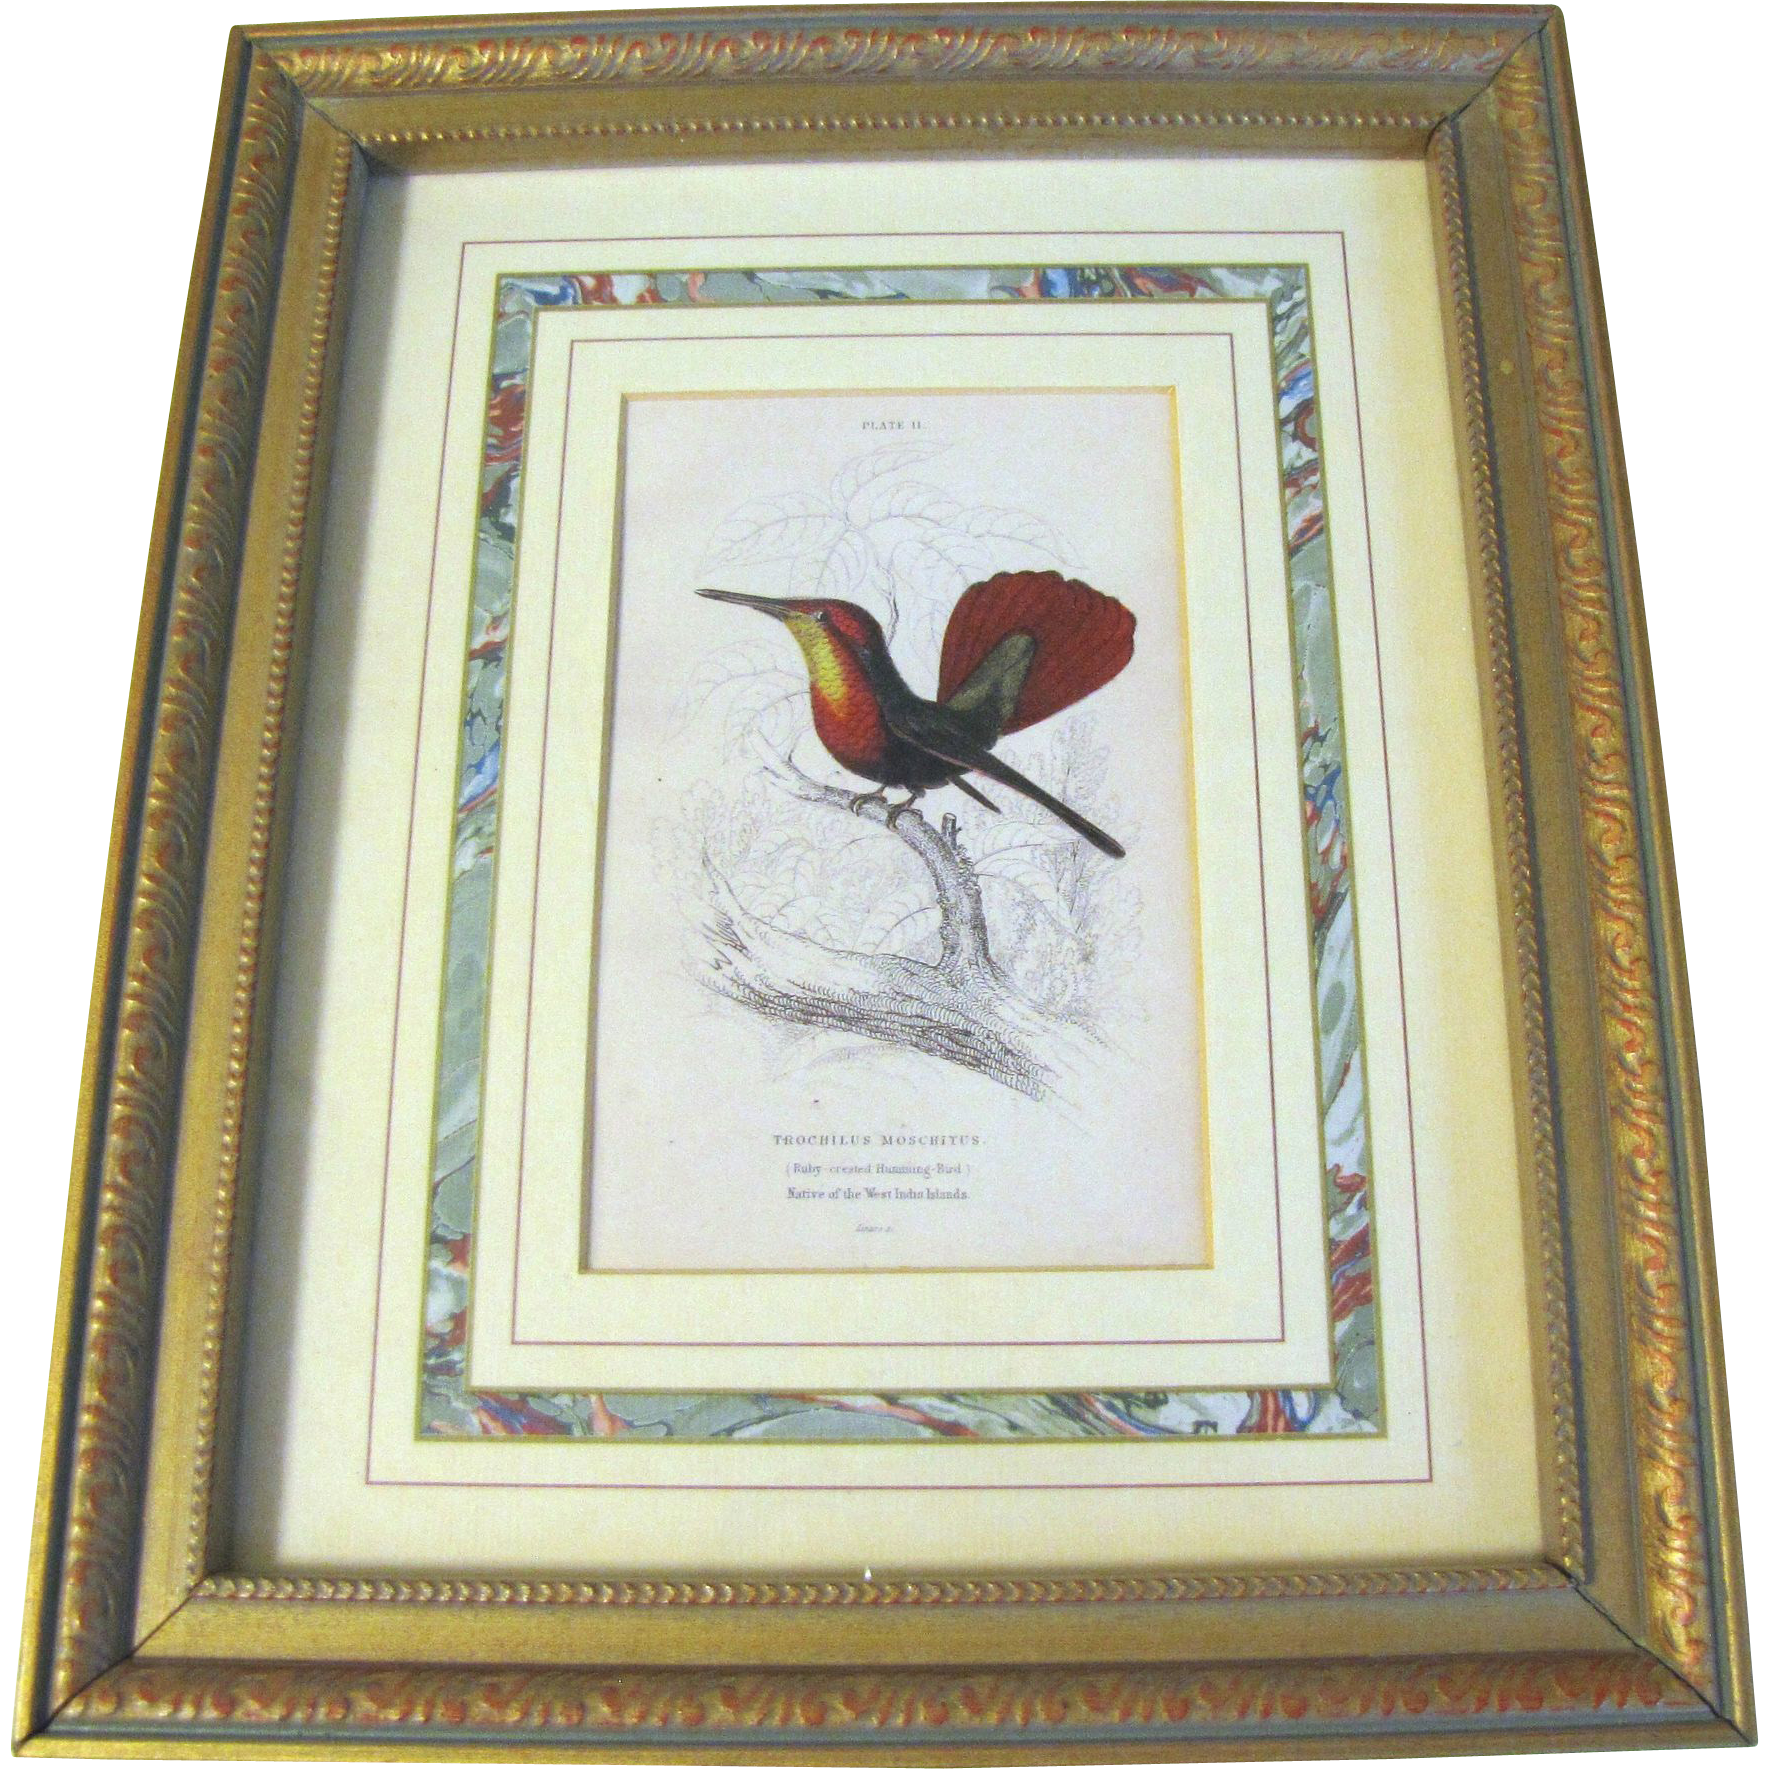 Framed and Matted Hand-Colored Engraving of Hummingbird Lizars